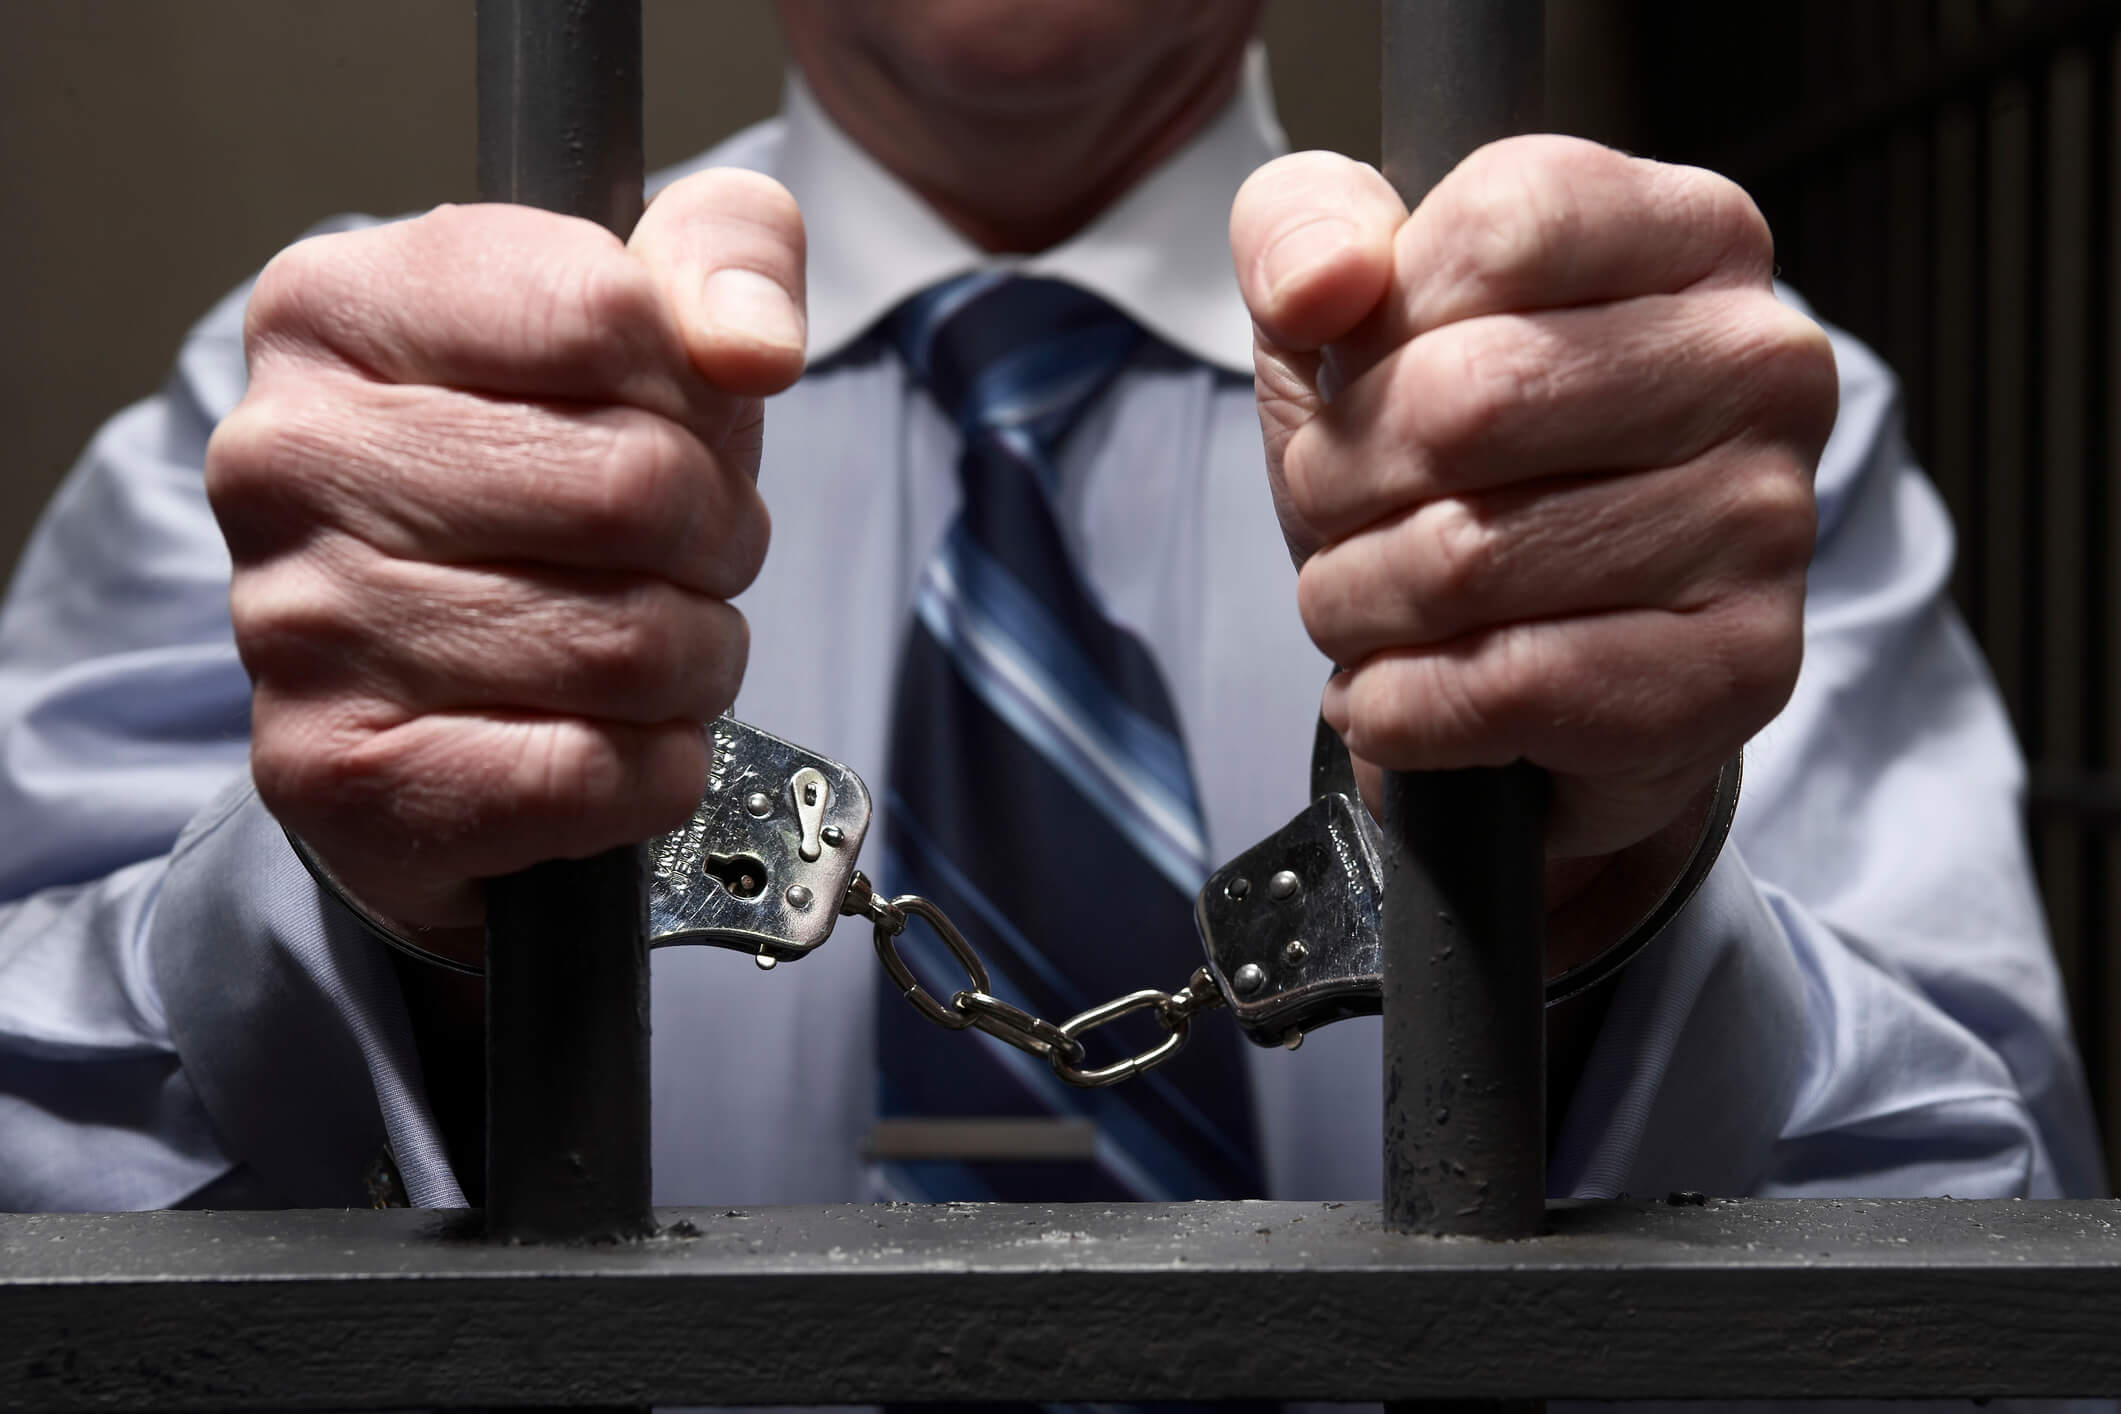 The bail bond services in online at just a few clicks!